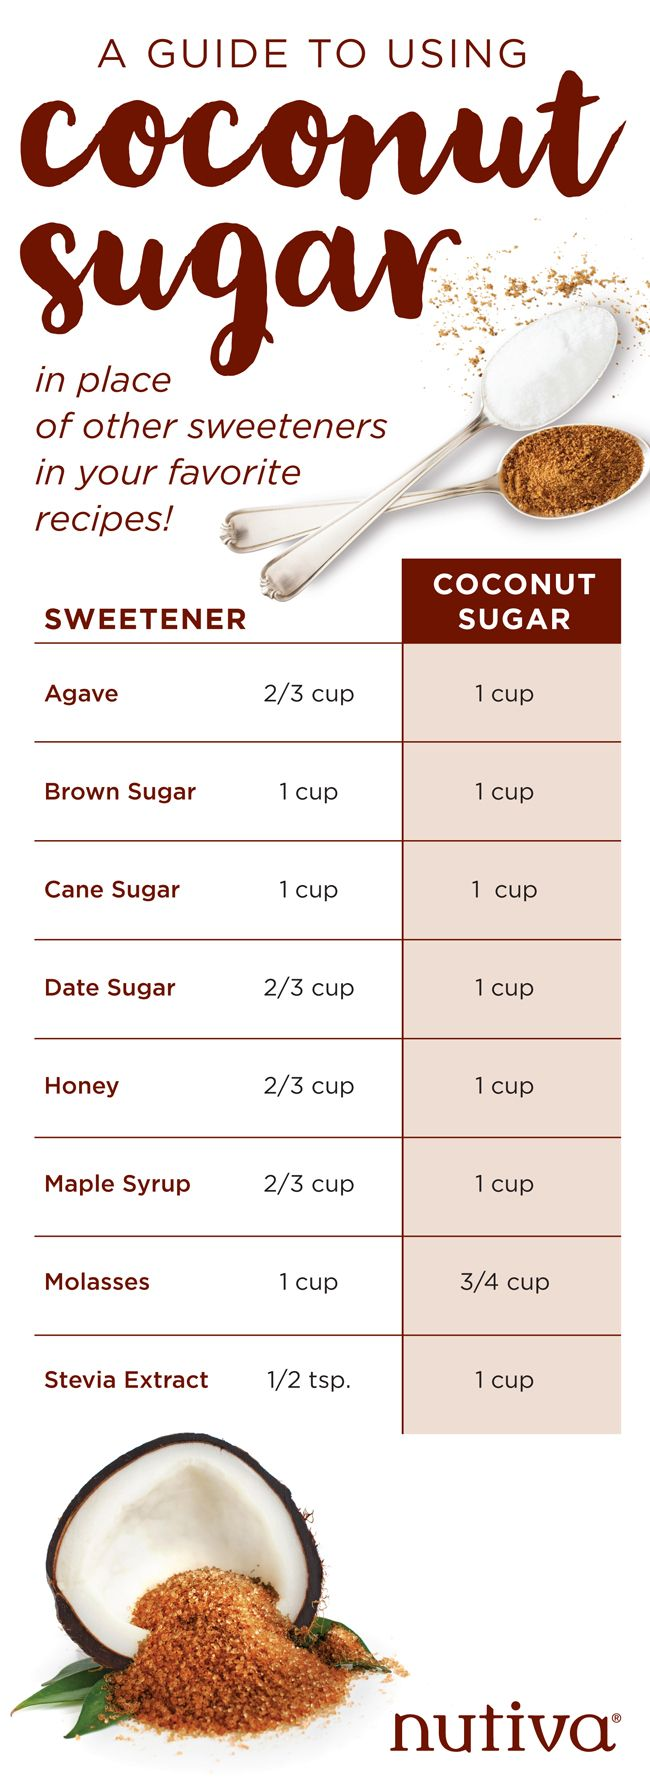 Baking with Organic Unrefined Coconut Sugar A Guide to Using Coconut Sugar kitchen.nutiva.com